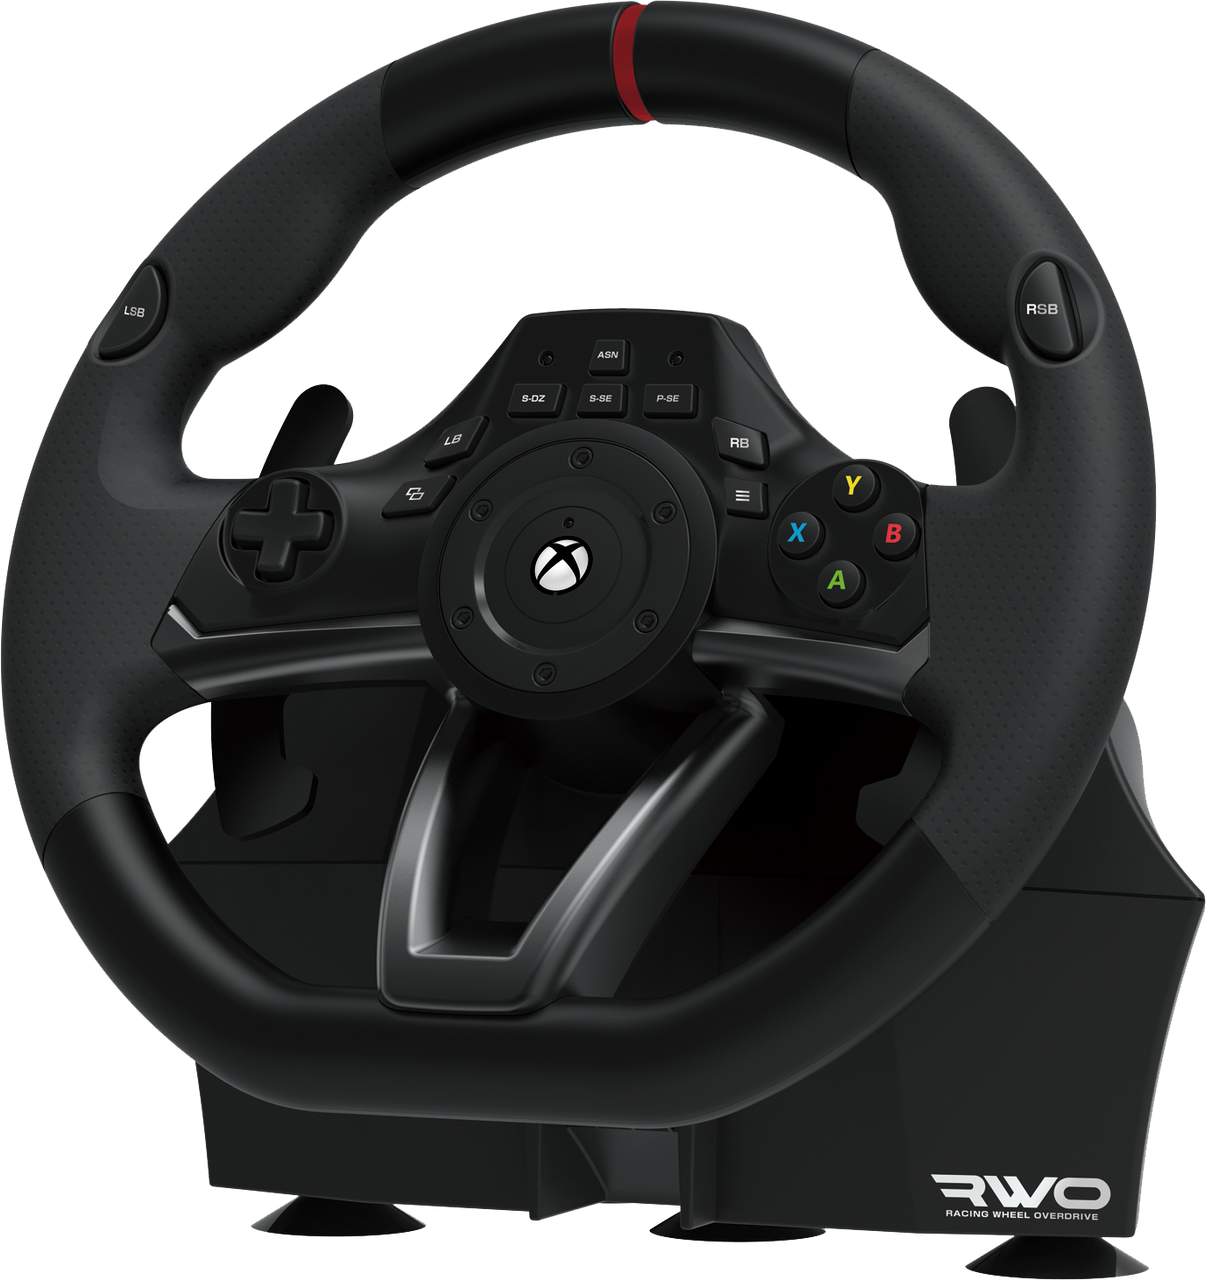 Racing Wheel Overdrive for Xbox One